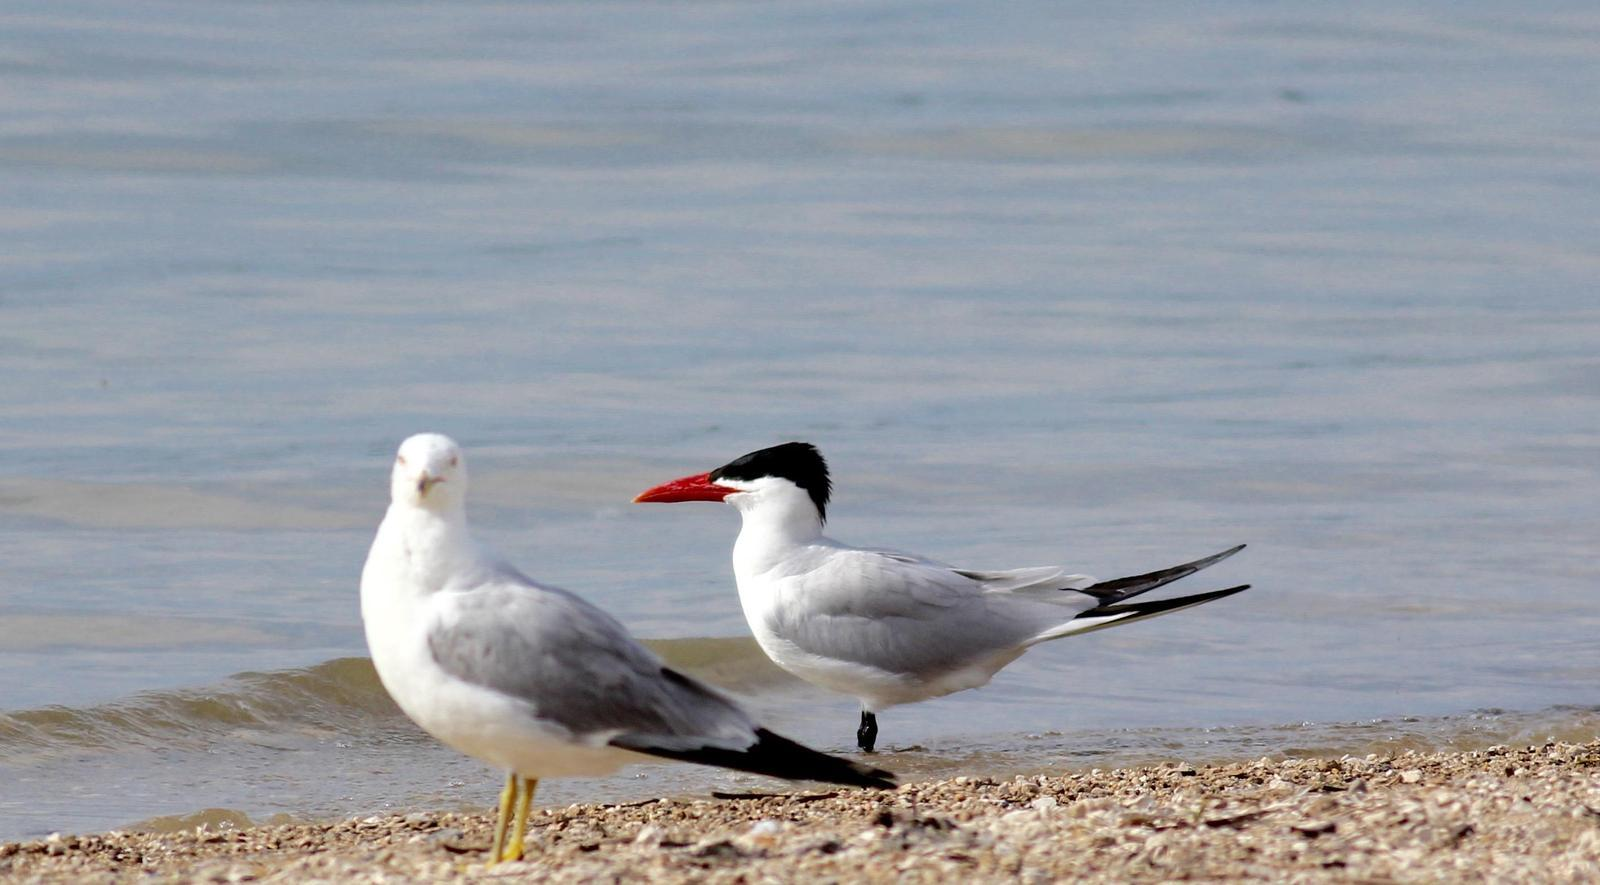 Caspian Tern Photo by Kathryn Keith